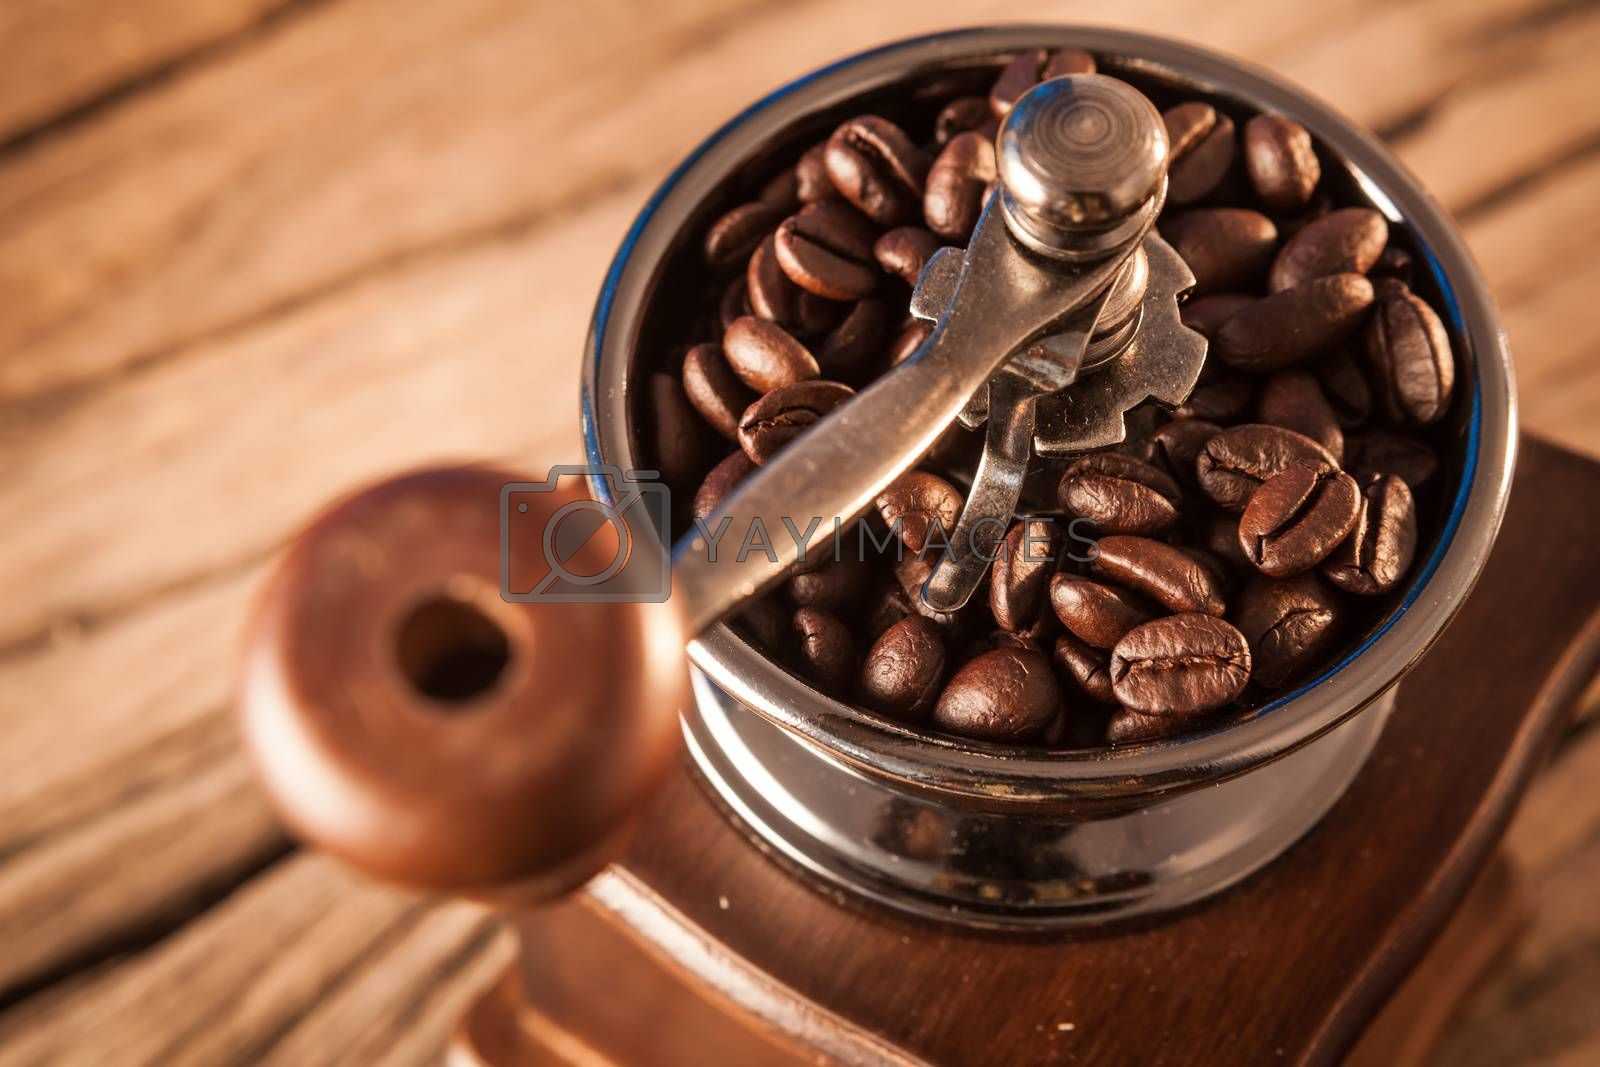 Vintage manual coffee grinder with coffee beans on wood table